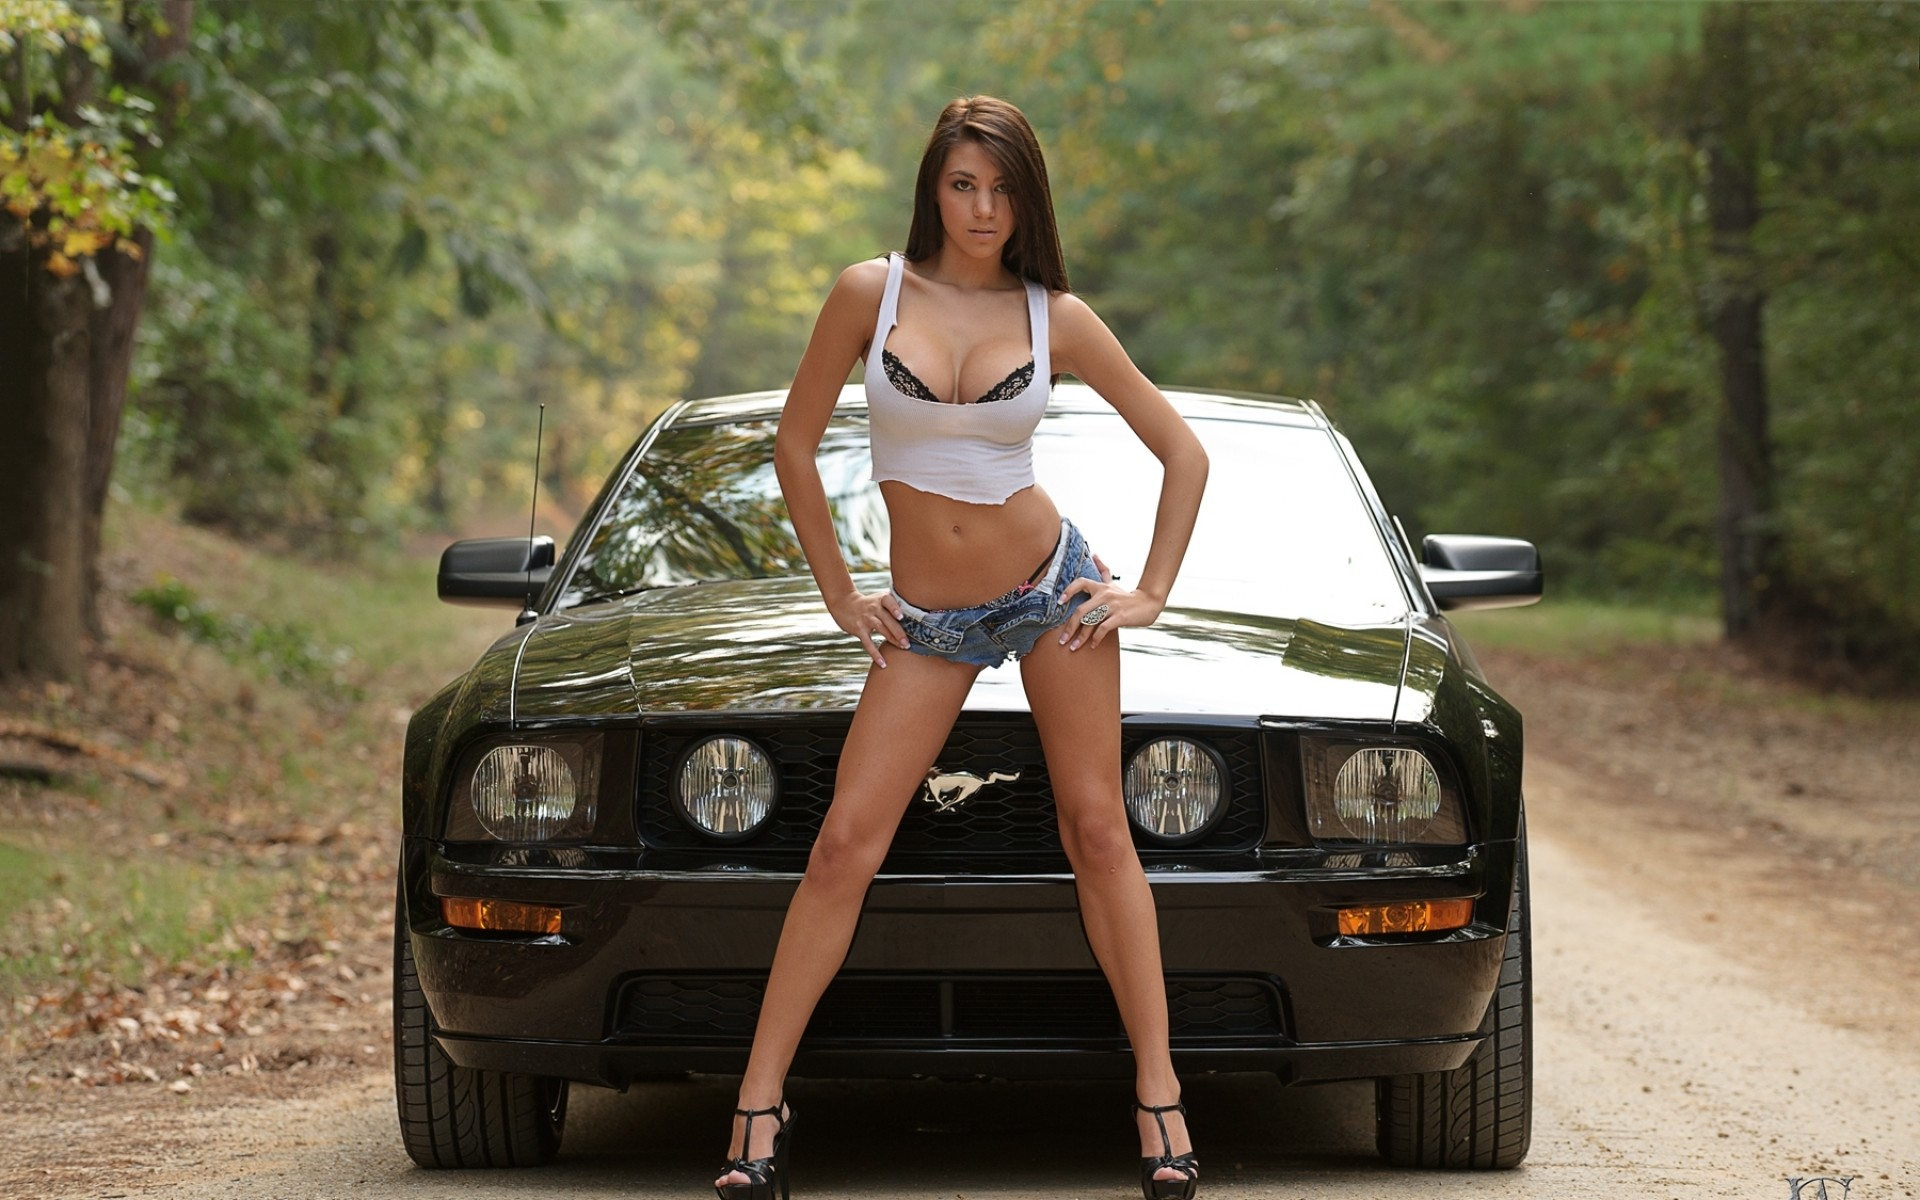 1920x1200 Women trees cars cleavage high heels ford mustang denim shorts wallpaper |   | 31928 | WallpaperUP